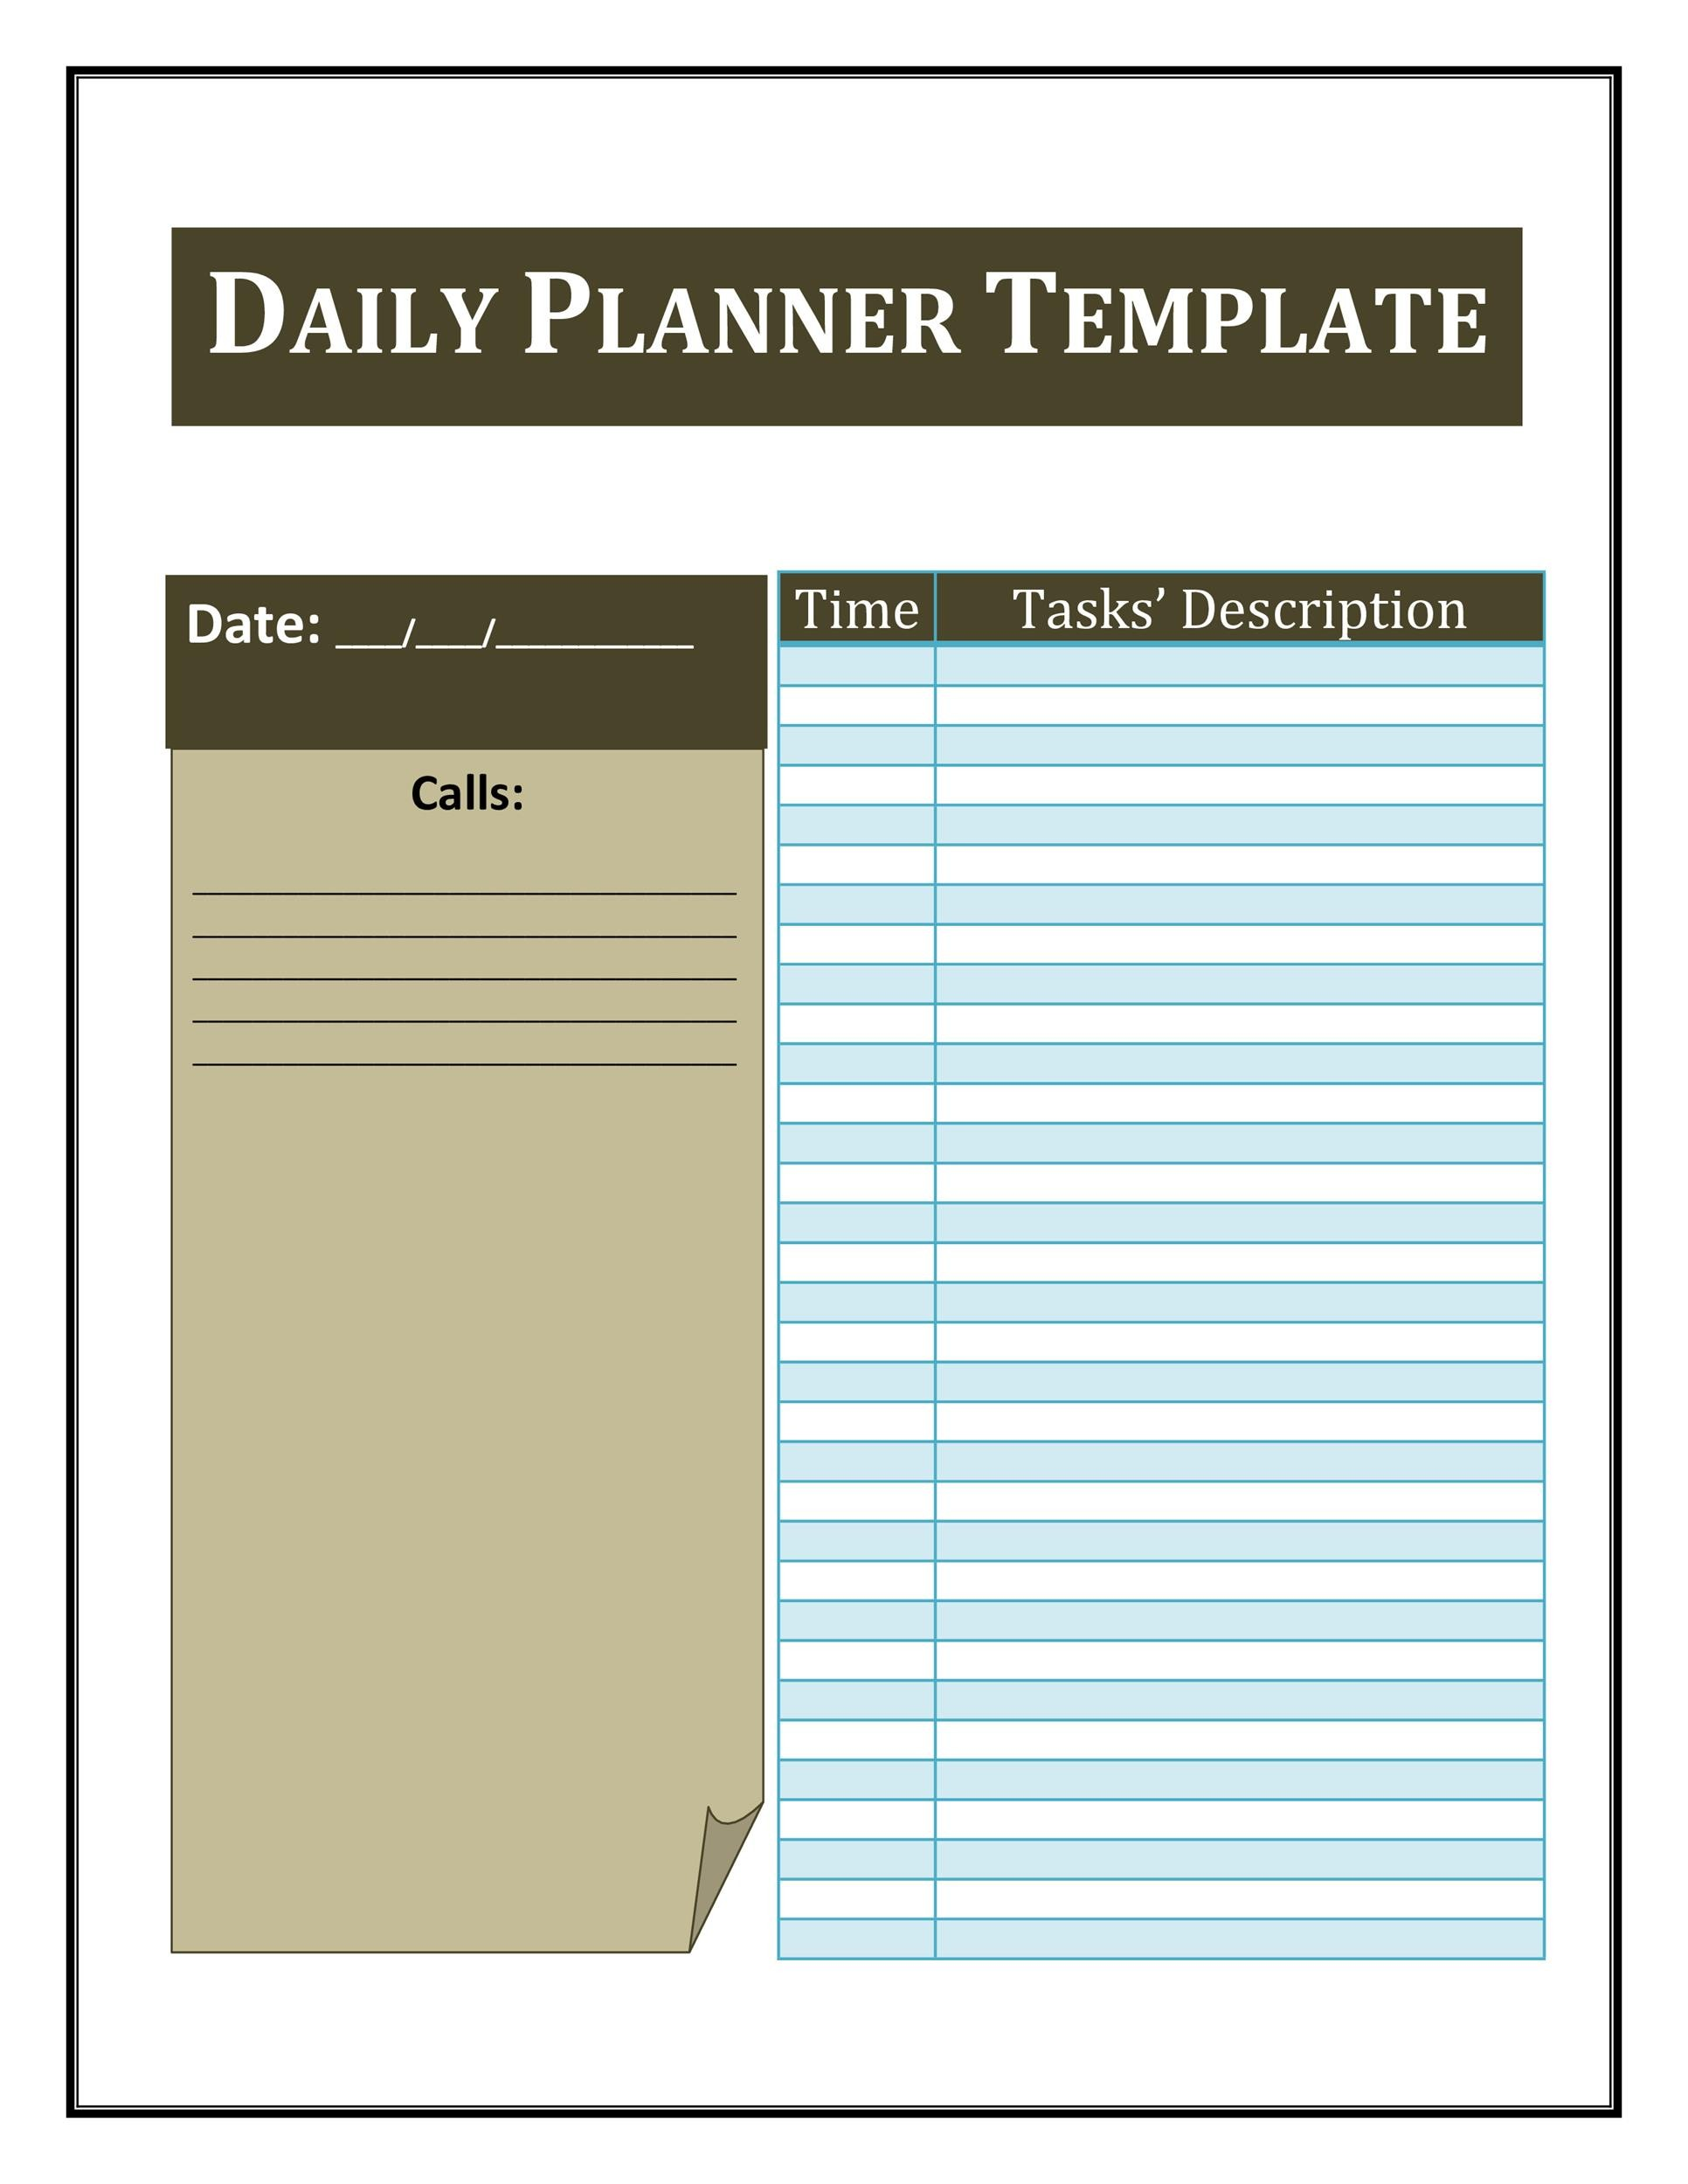 40 printable daily planner templates free template lab printable daily planner template 22 wajeb Gallery